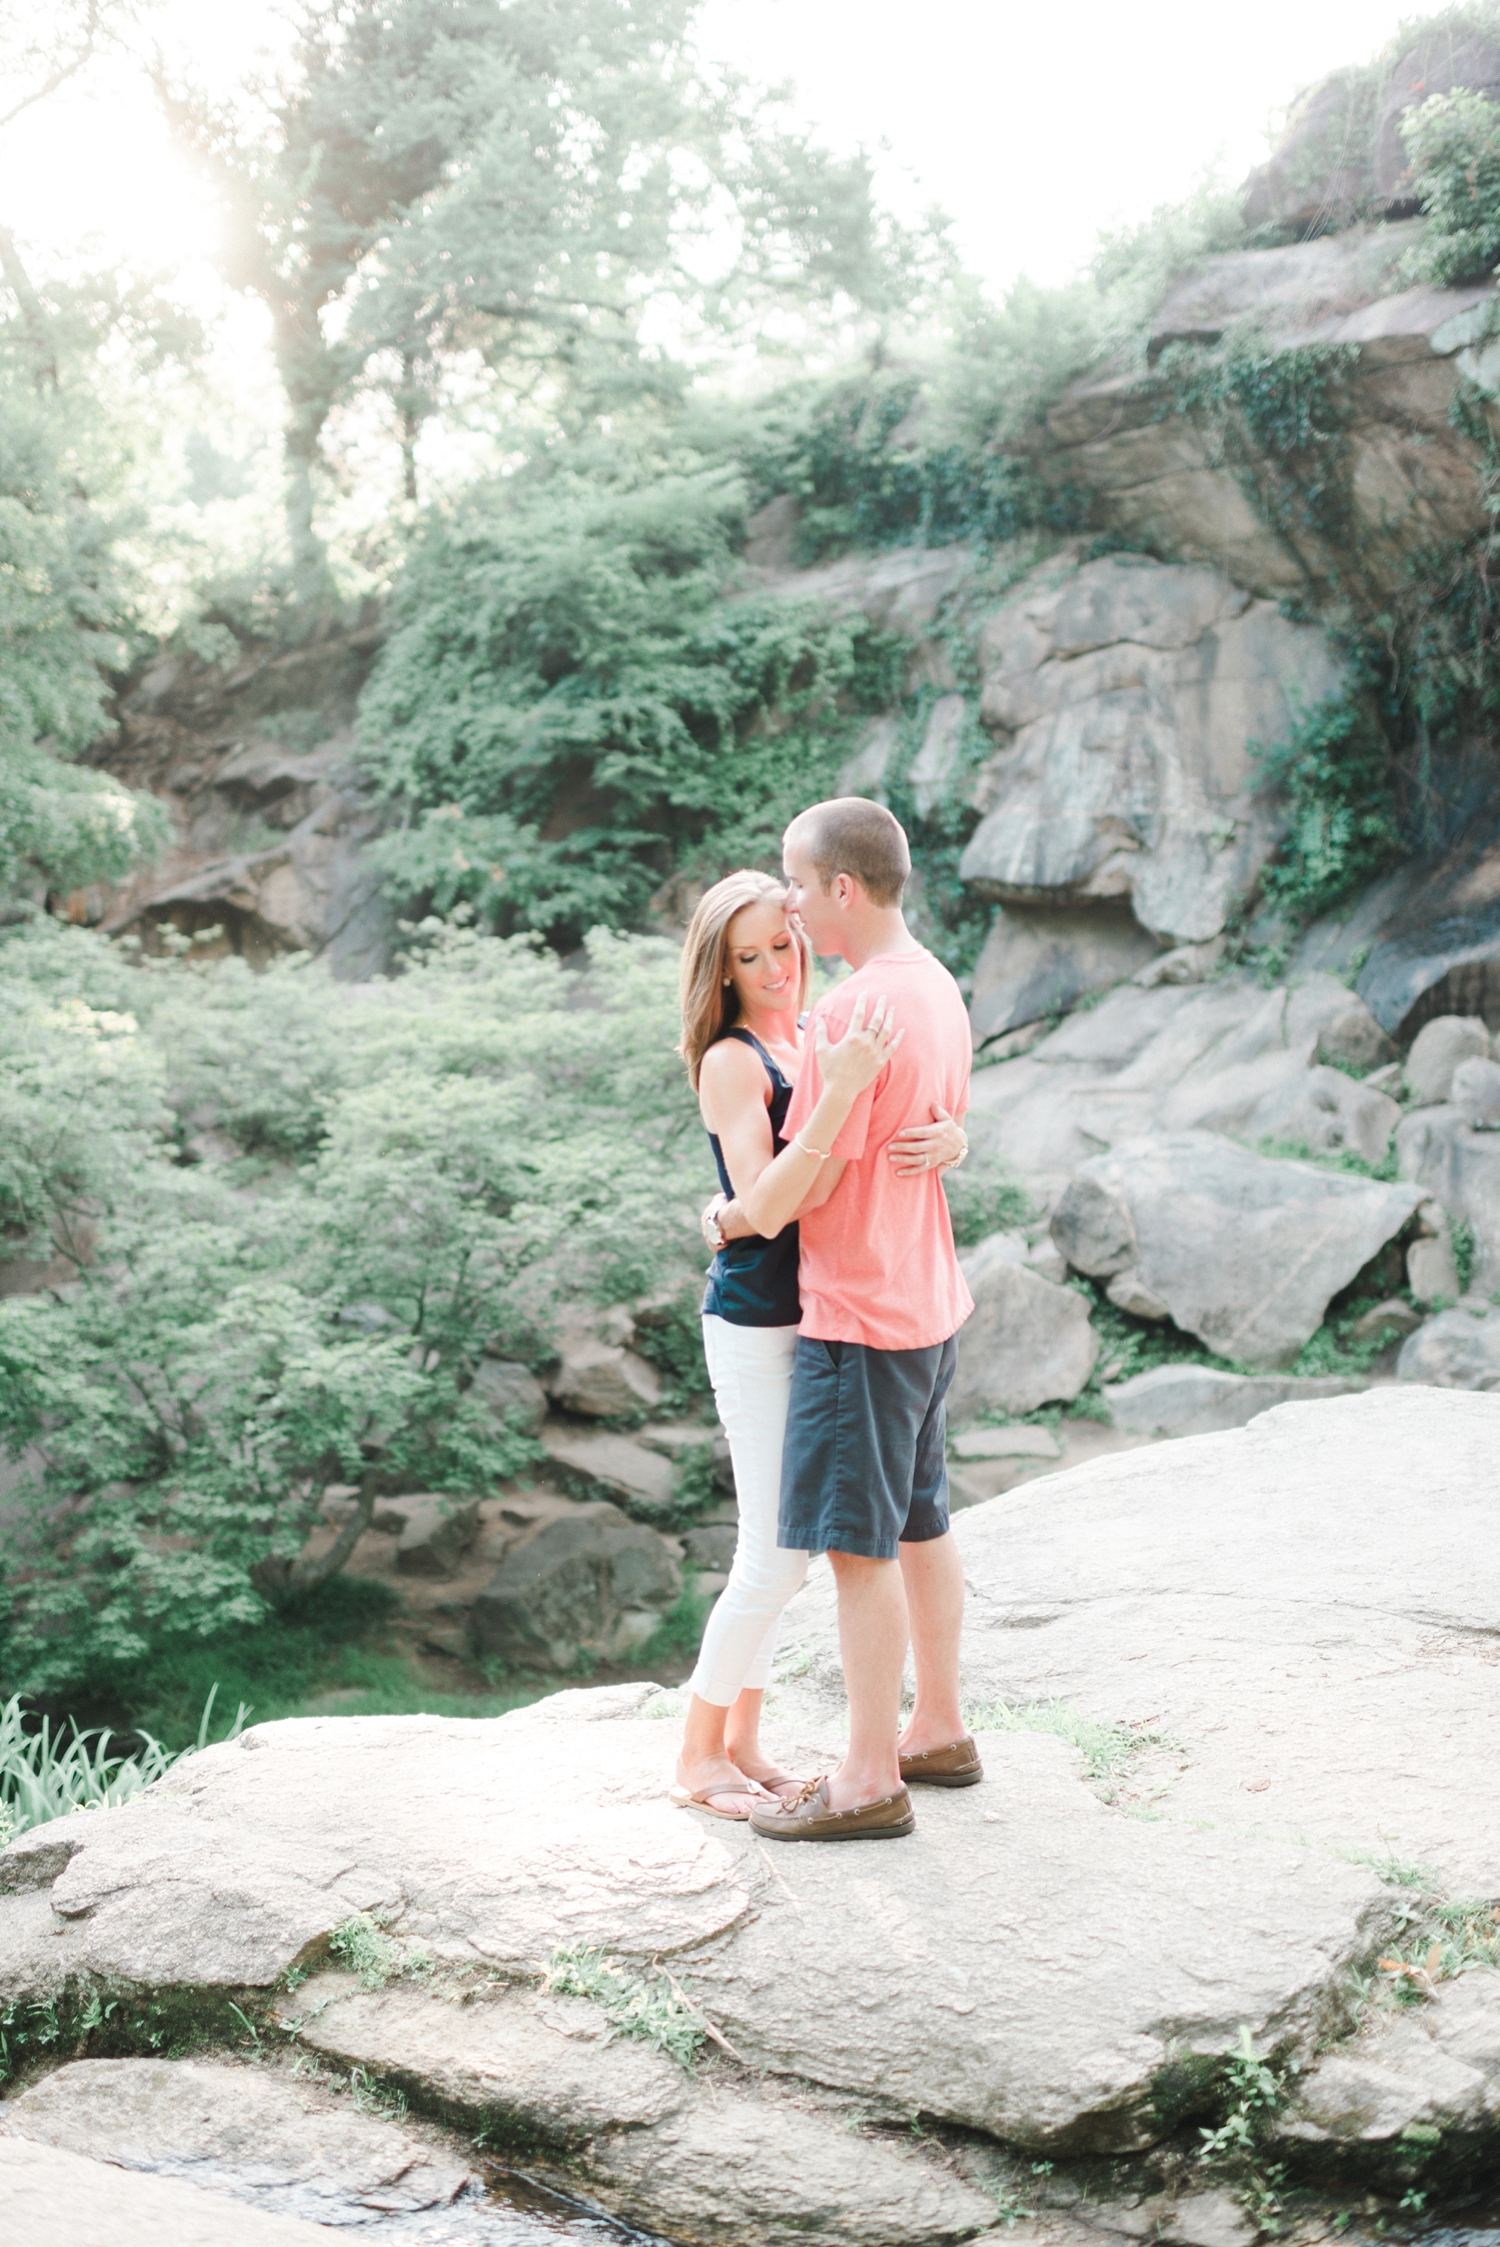 Maymon_Park_richmond_engagement_photography_0015.jpg